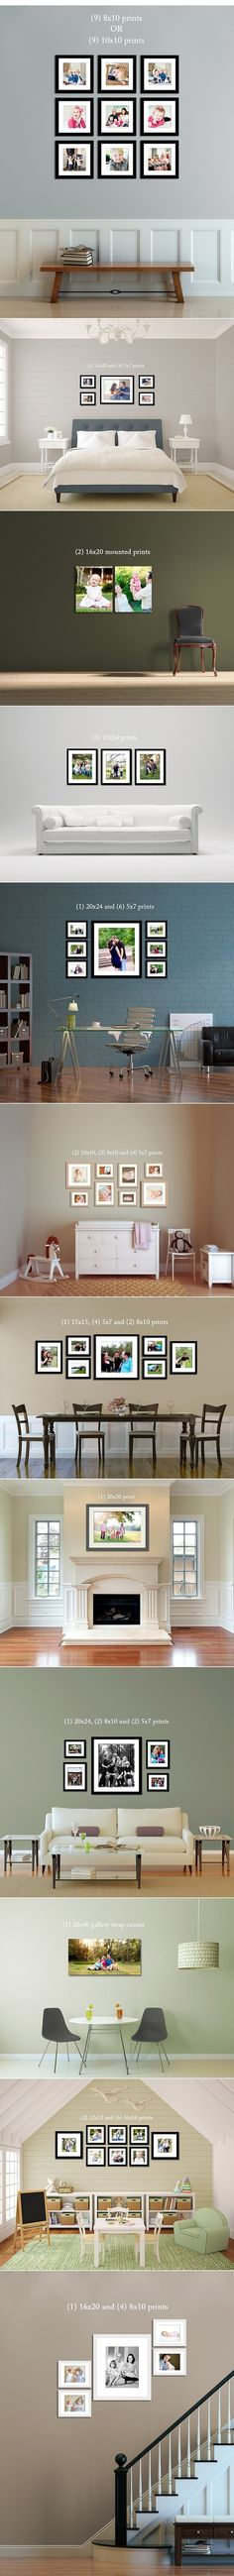 Great picture arrangement ideas.